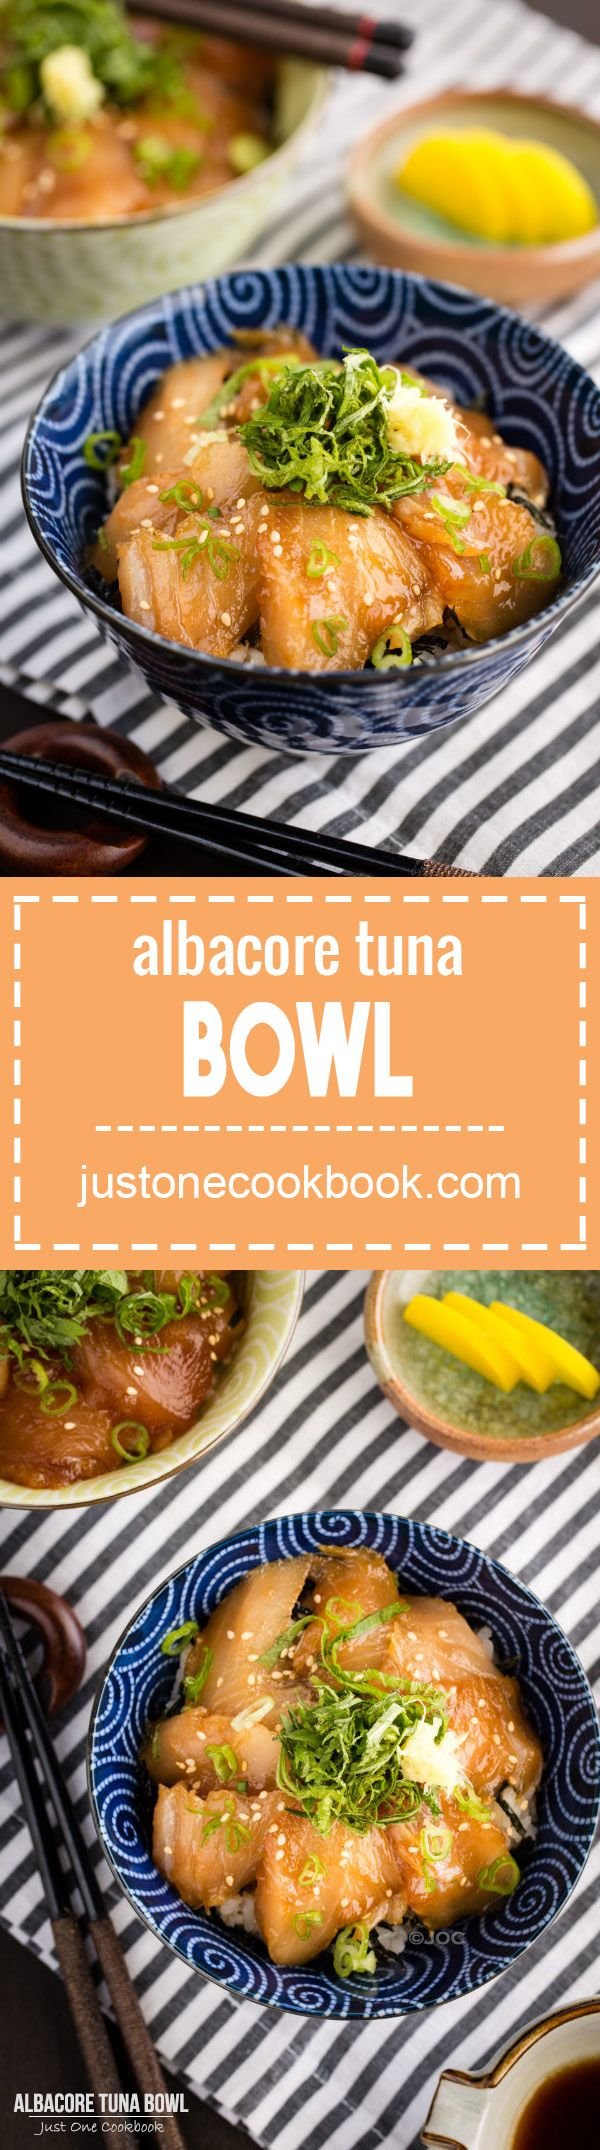 Albacore Tuna Bowl (びんちょう鮪の漬け丼) | Easy Japanese Recipes at JustOneCookbook.com